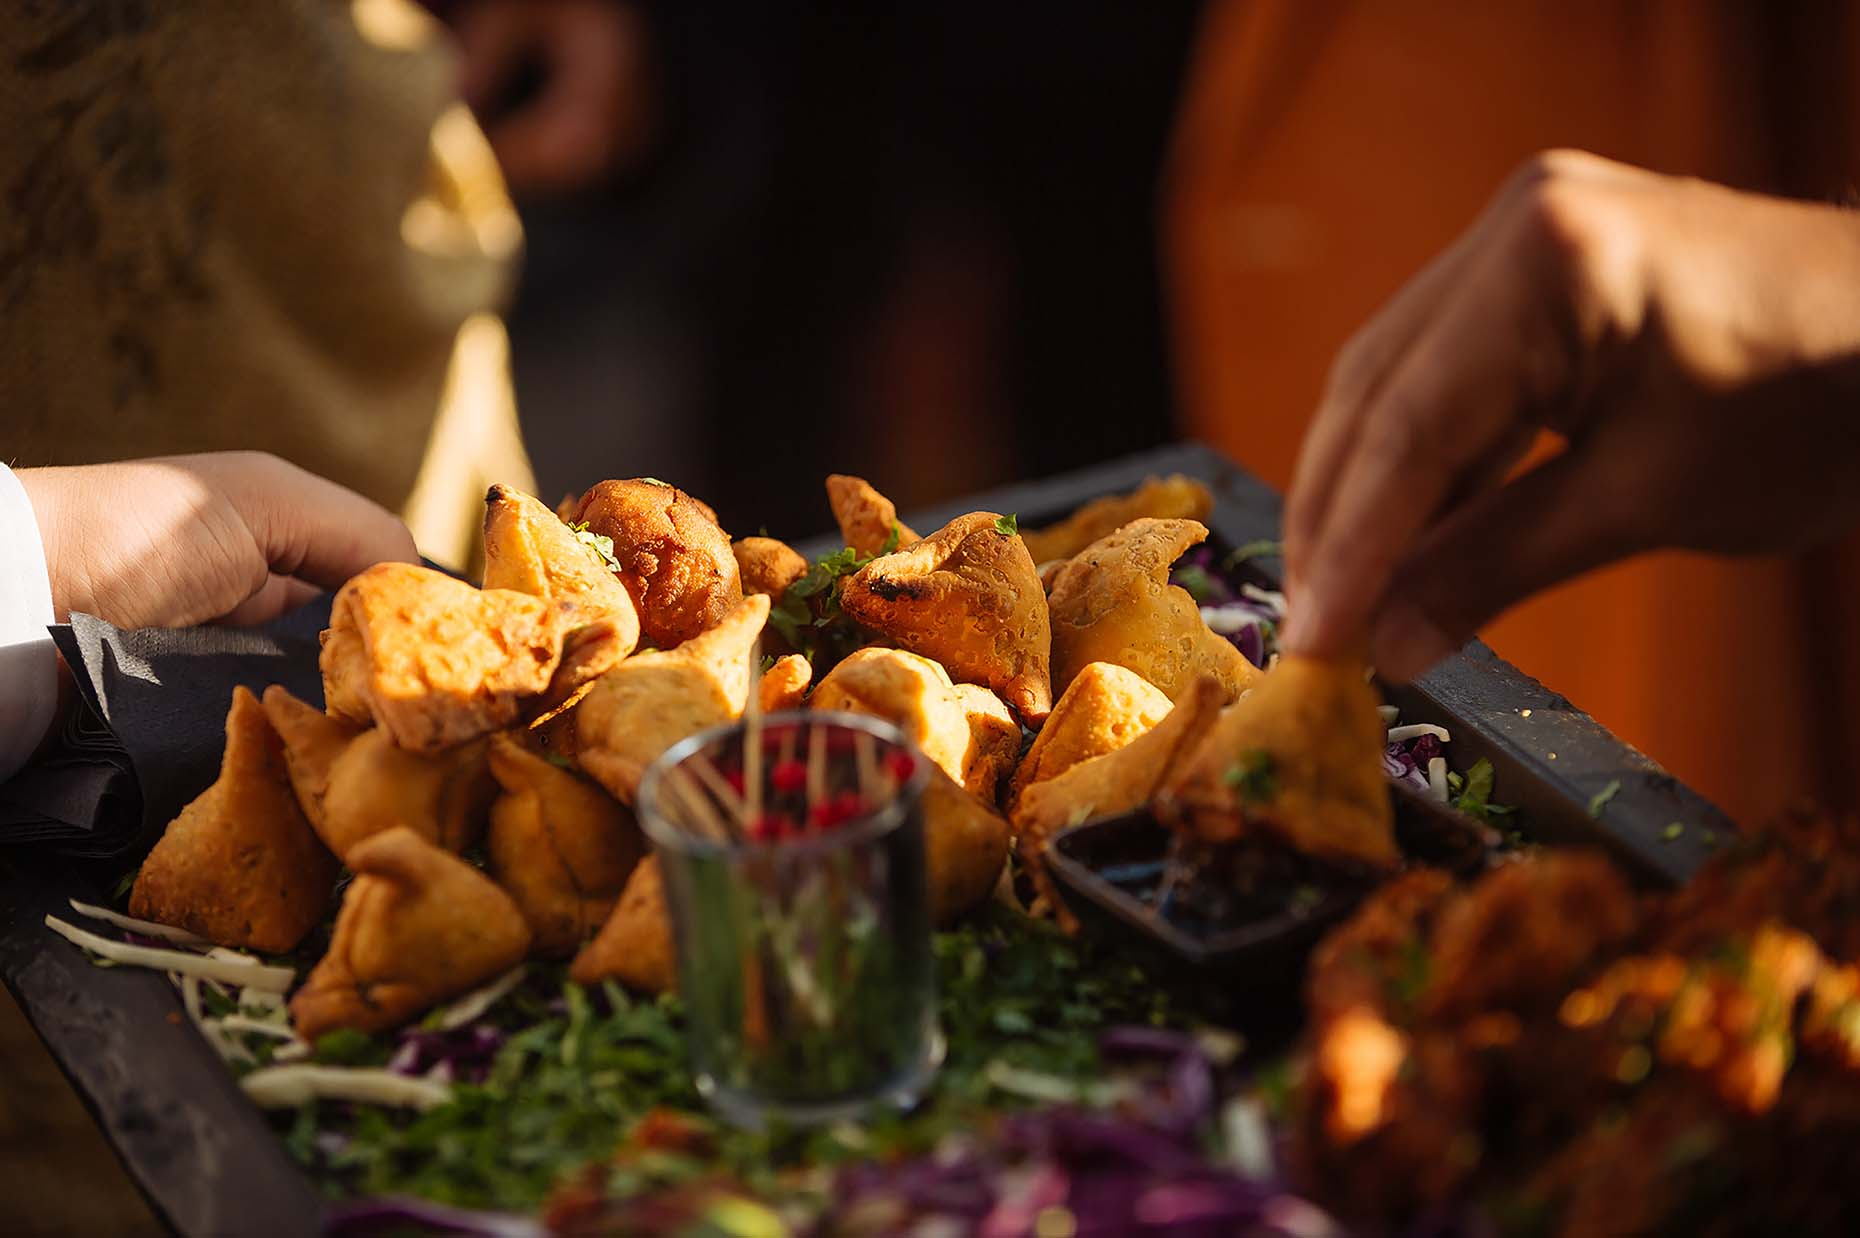 indian-wedding-food-samosa-canapes-london-bethnal-green-hackney-16